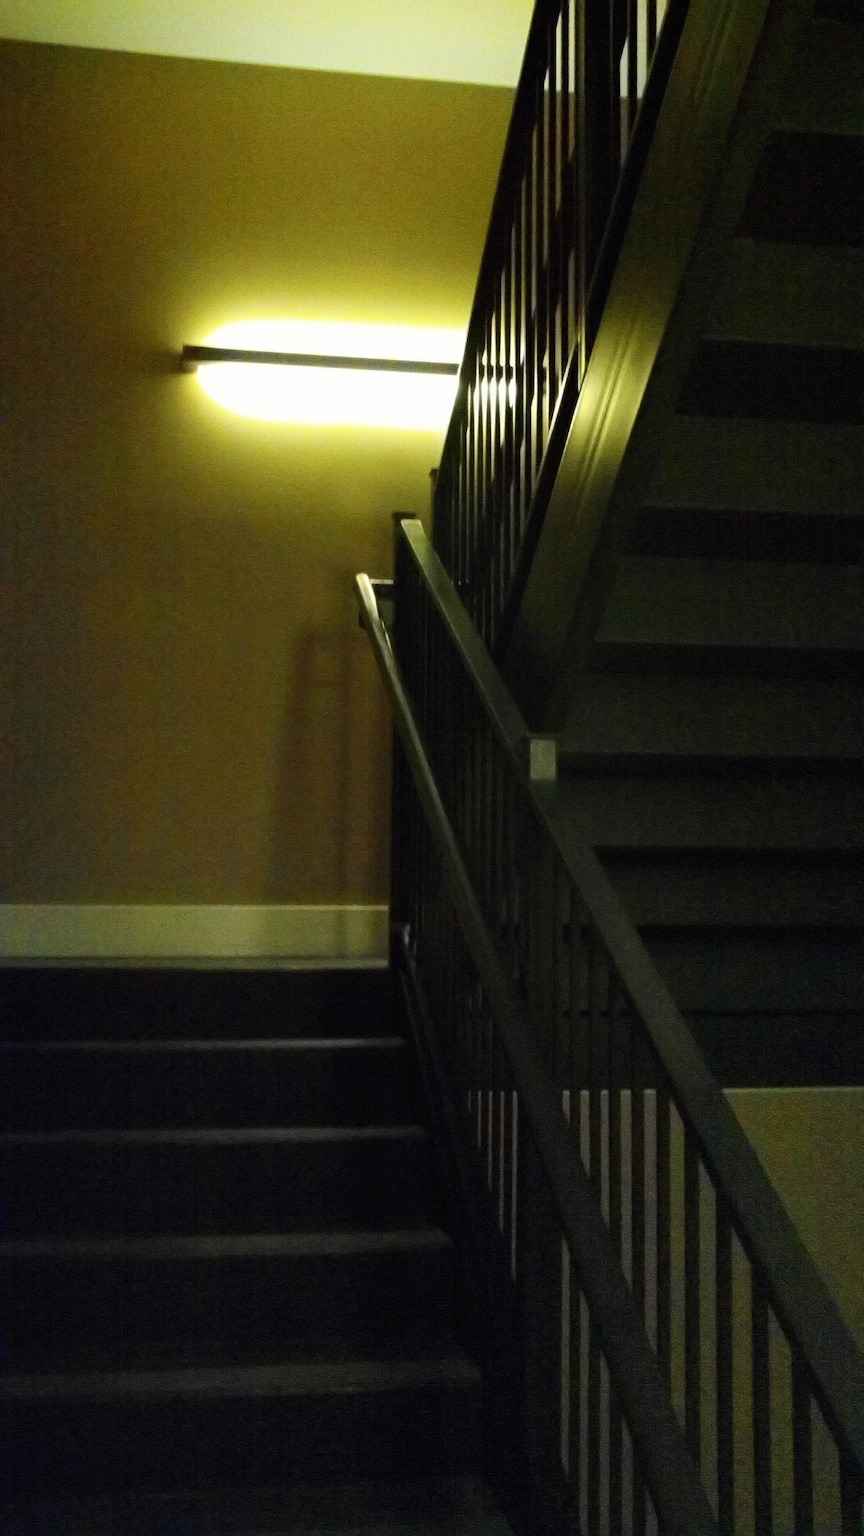 Stairwell at Hotel Parq Central -- ISO 800, f2.8, 1/30 sec.